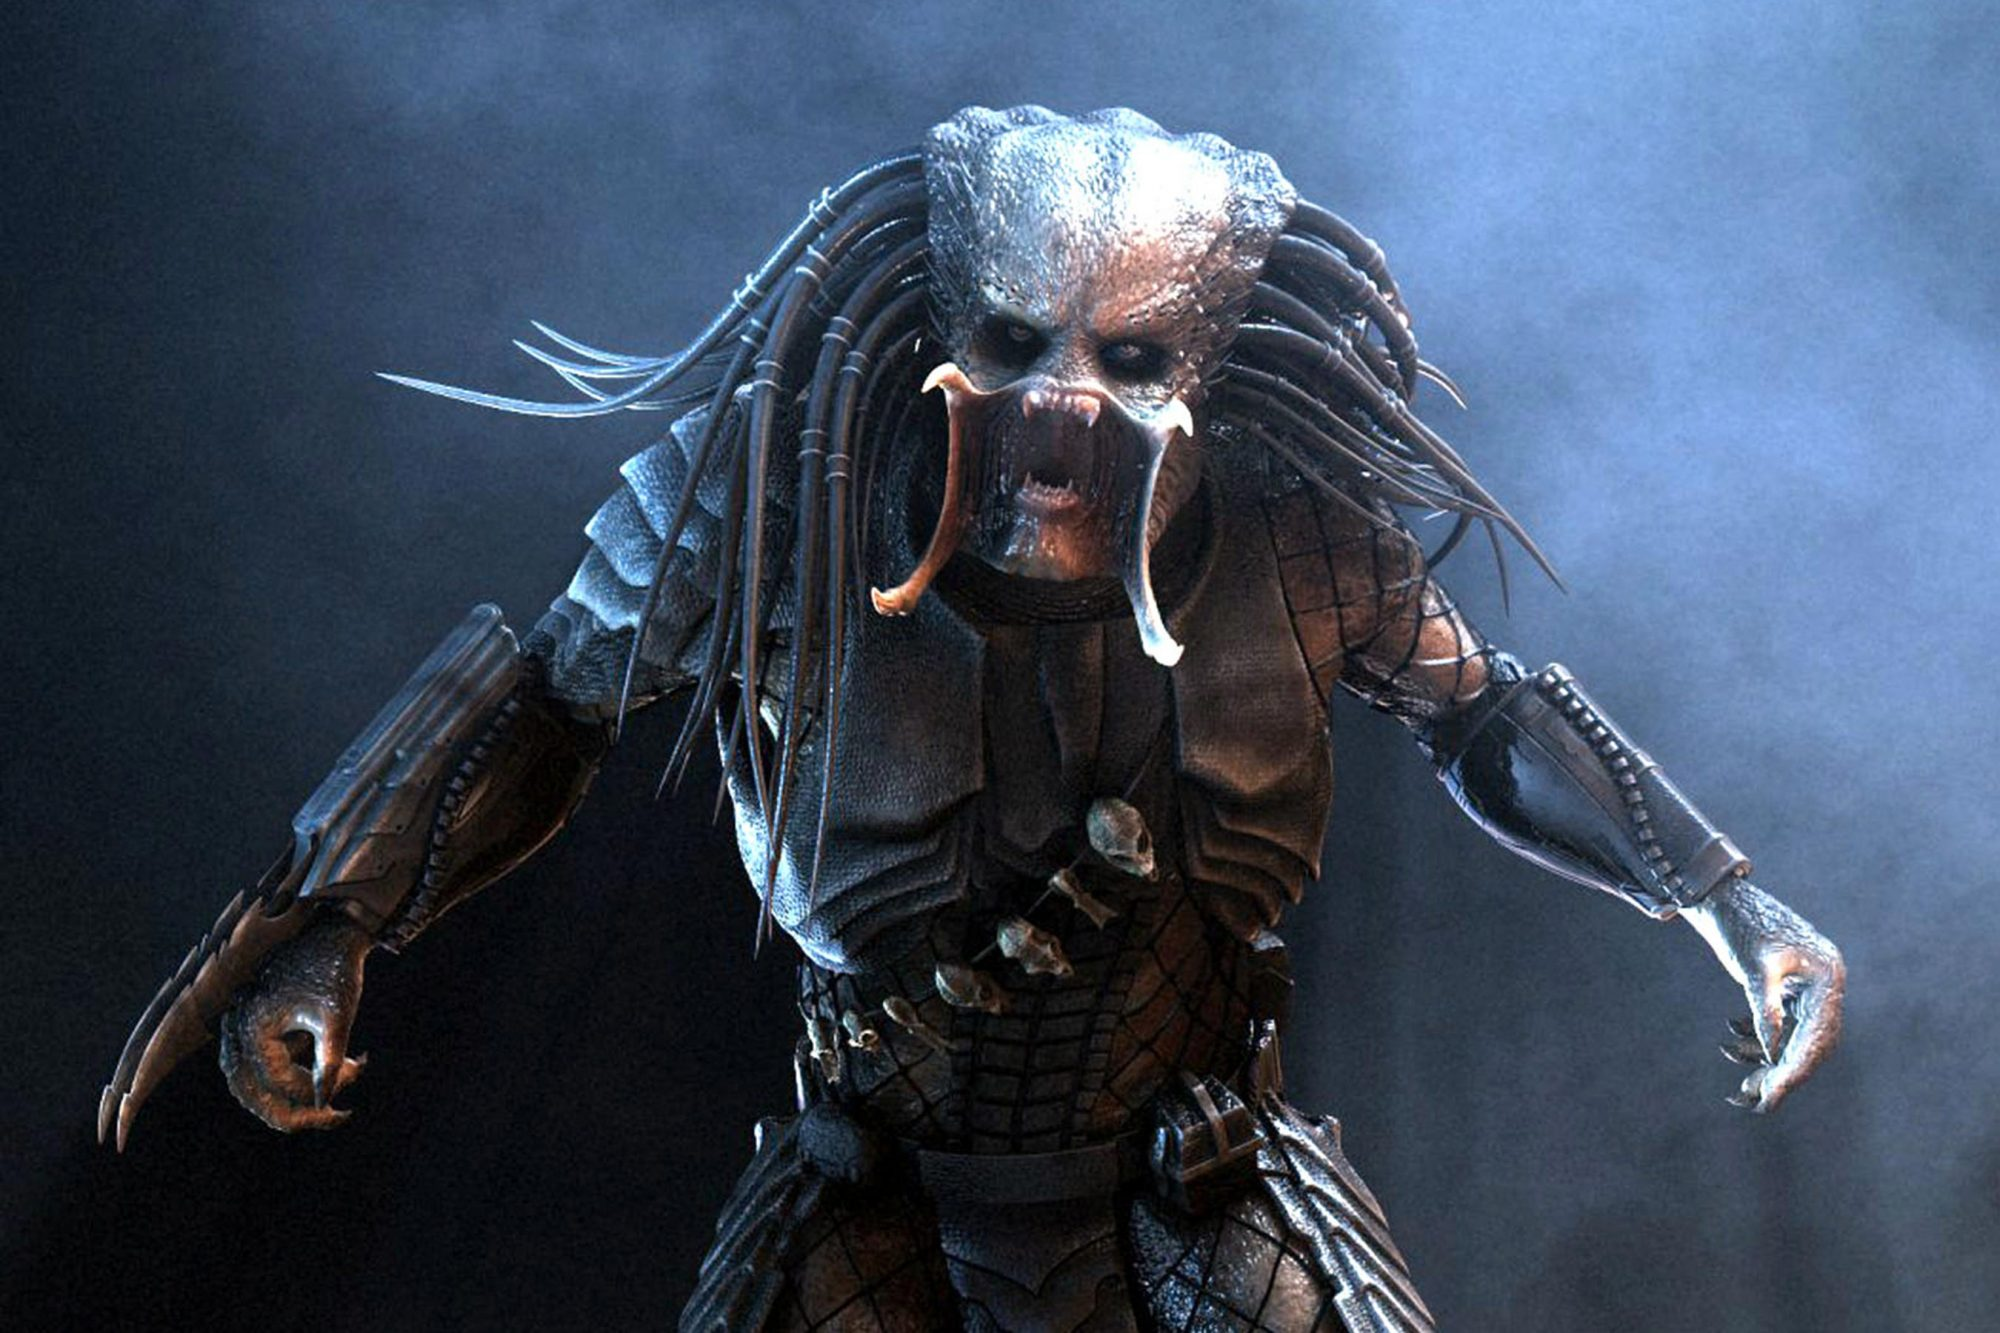 ALIEN VS. PREDATOR, 2004, TM & Copyright (c) 20th Century Fox Film Corp. All rights reserved.